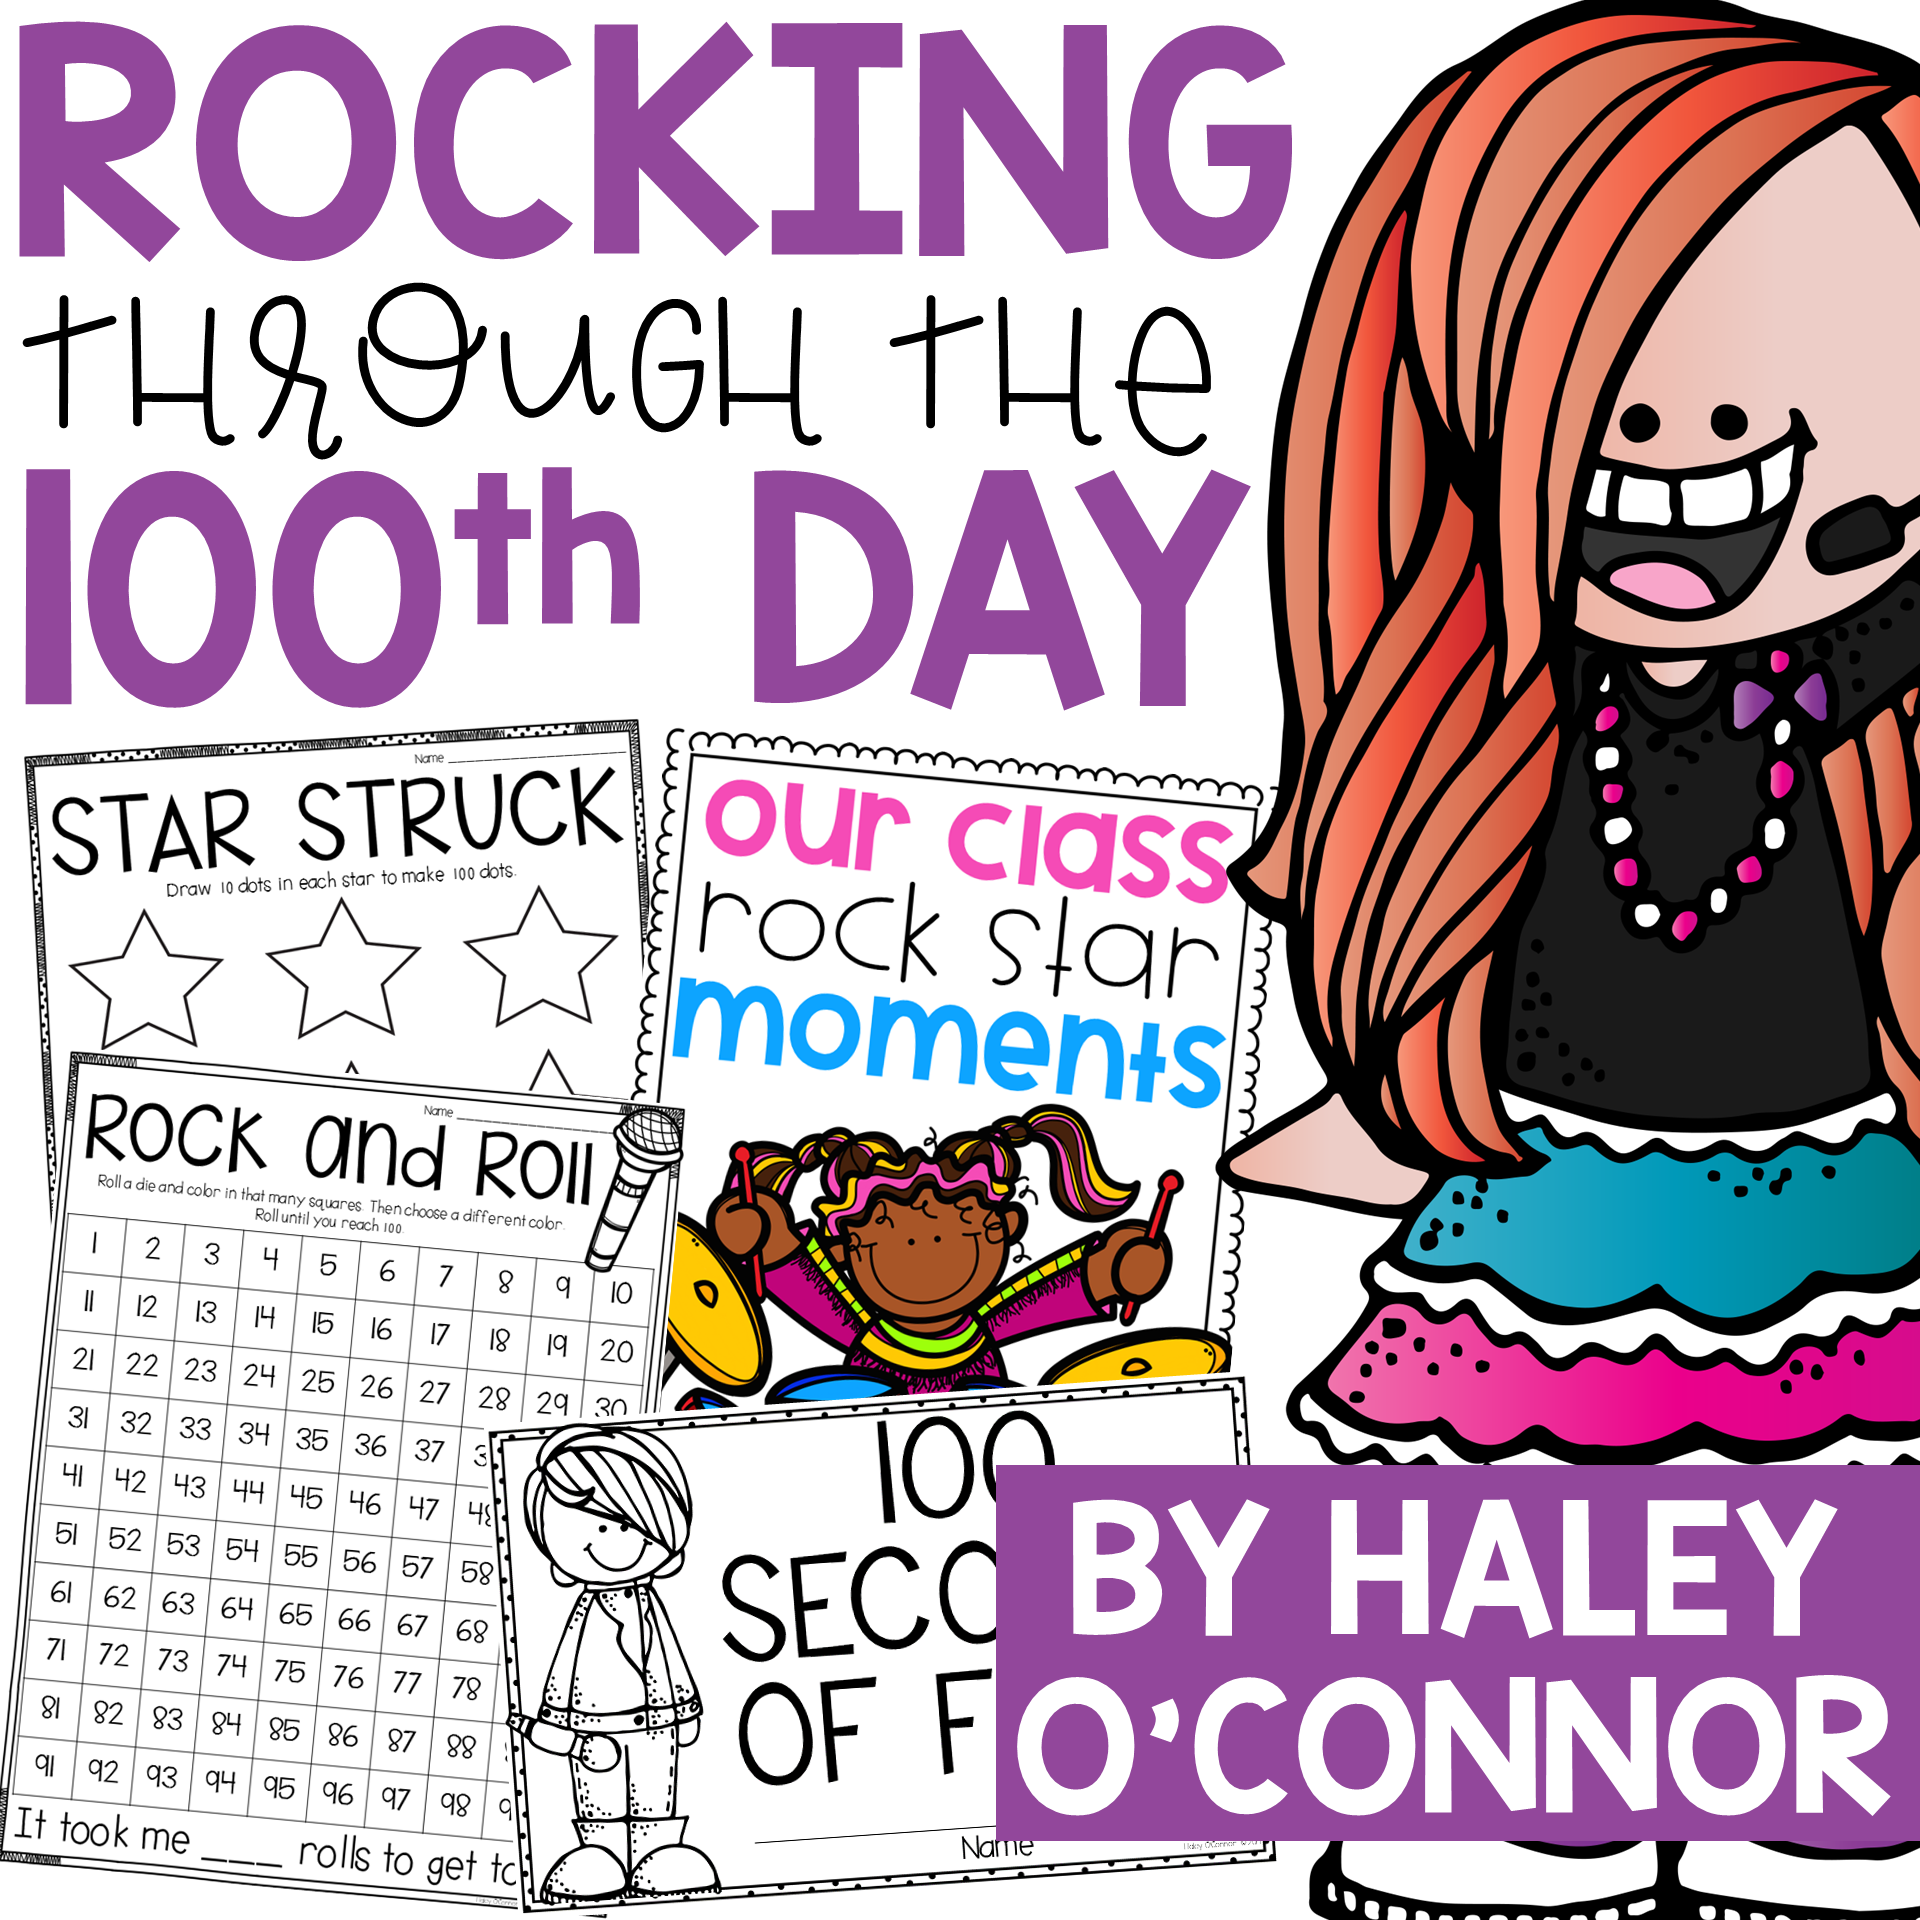 Rocking Through the 100th Day